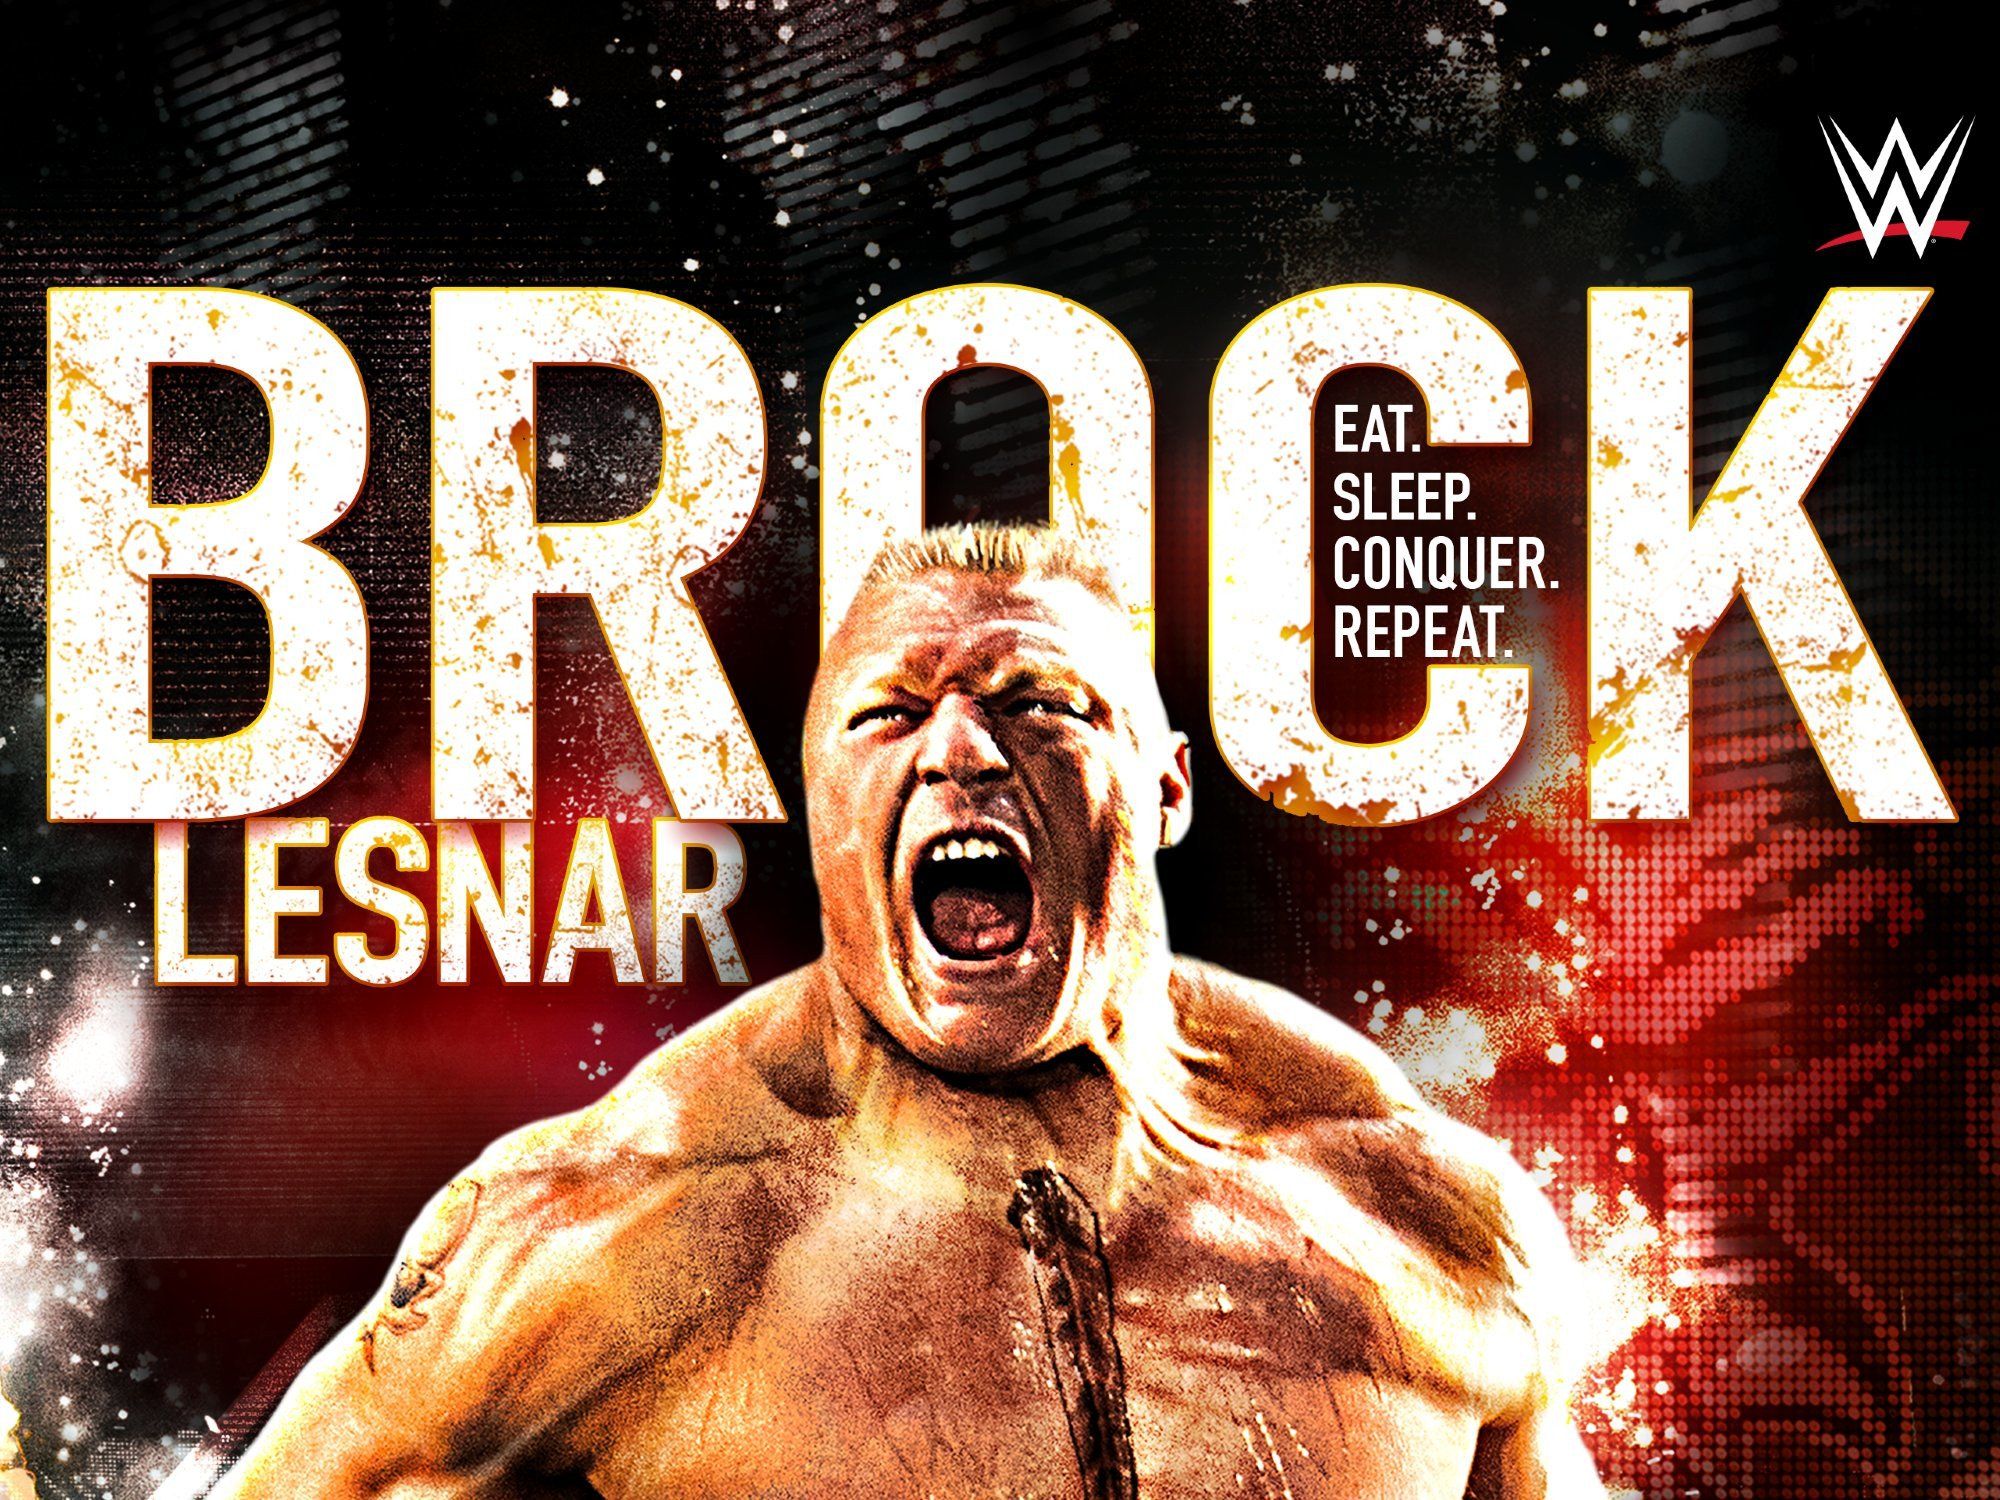 Amazon WWE Brock Lesnar Eat Sleep Conquer Repeat Sean Casey Rob Van Dam Kurt Angle Undertaker Triple H CM Punk John Cena